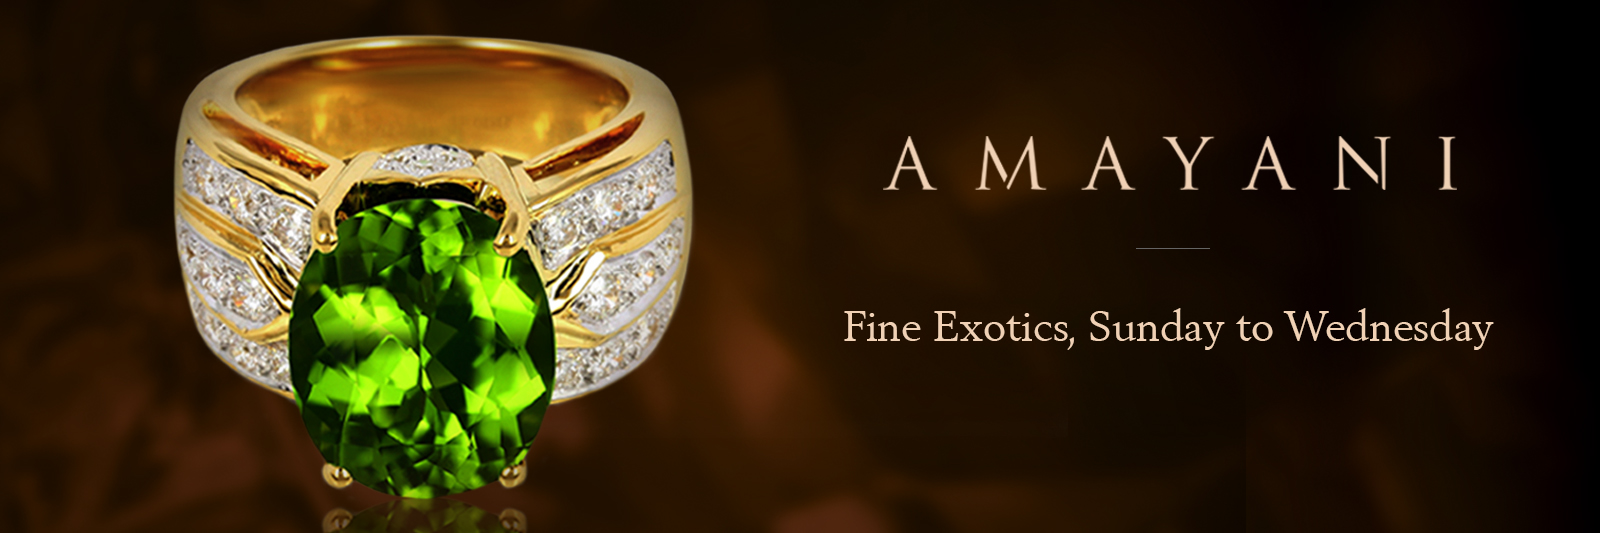 Amayani Fine Exotics at Rocks & Co.